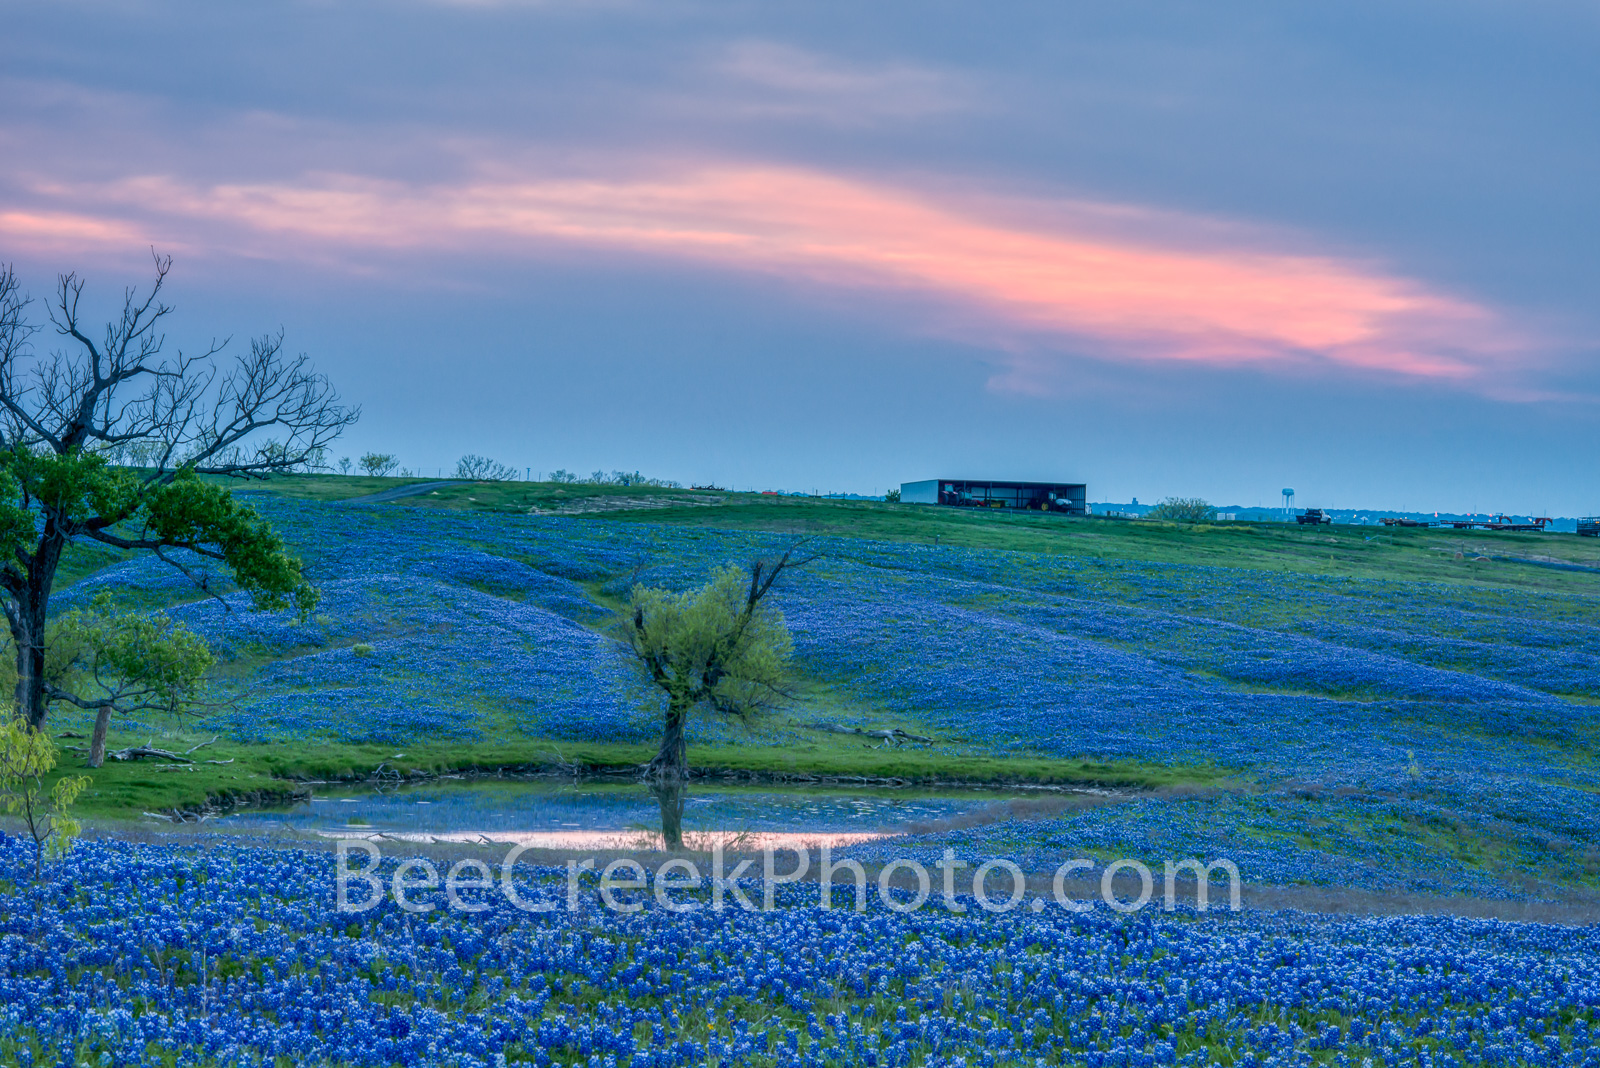 Bluebonnet Ranch Landscape Sunset - This wonderful field was such a lush field of bluebonnet wildflower right after sunset as...